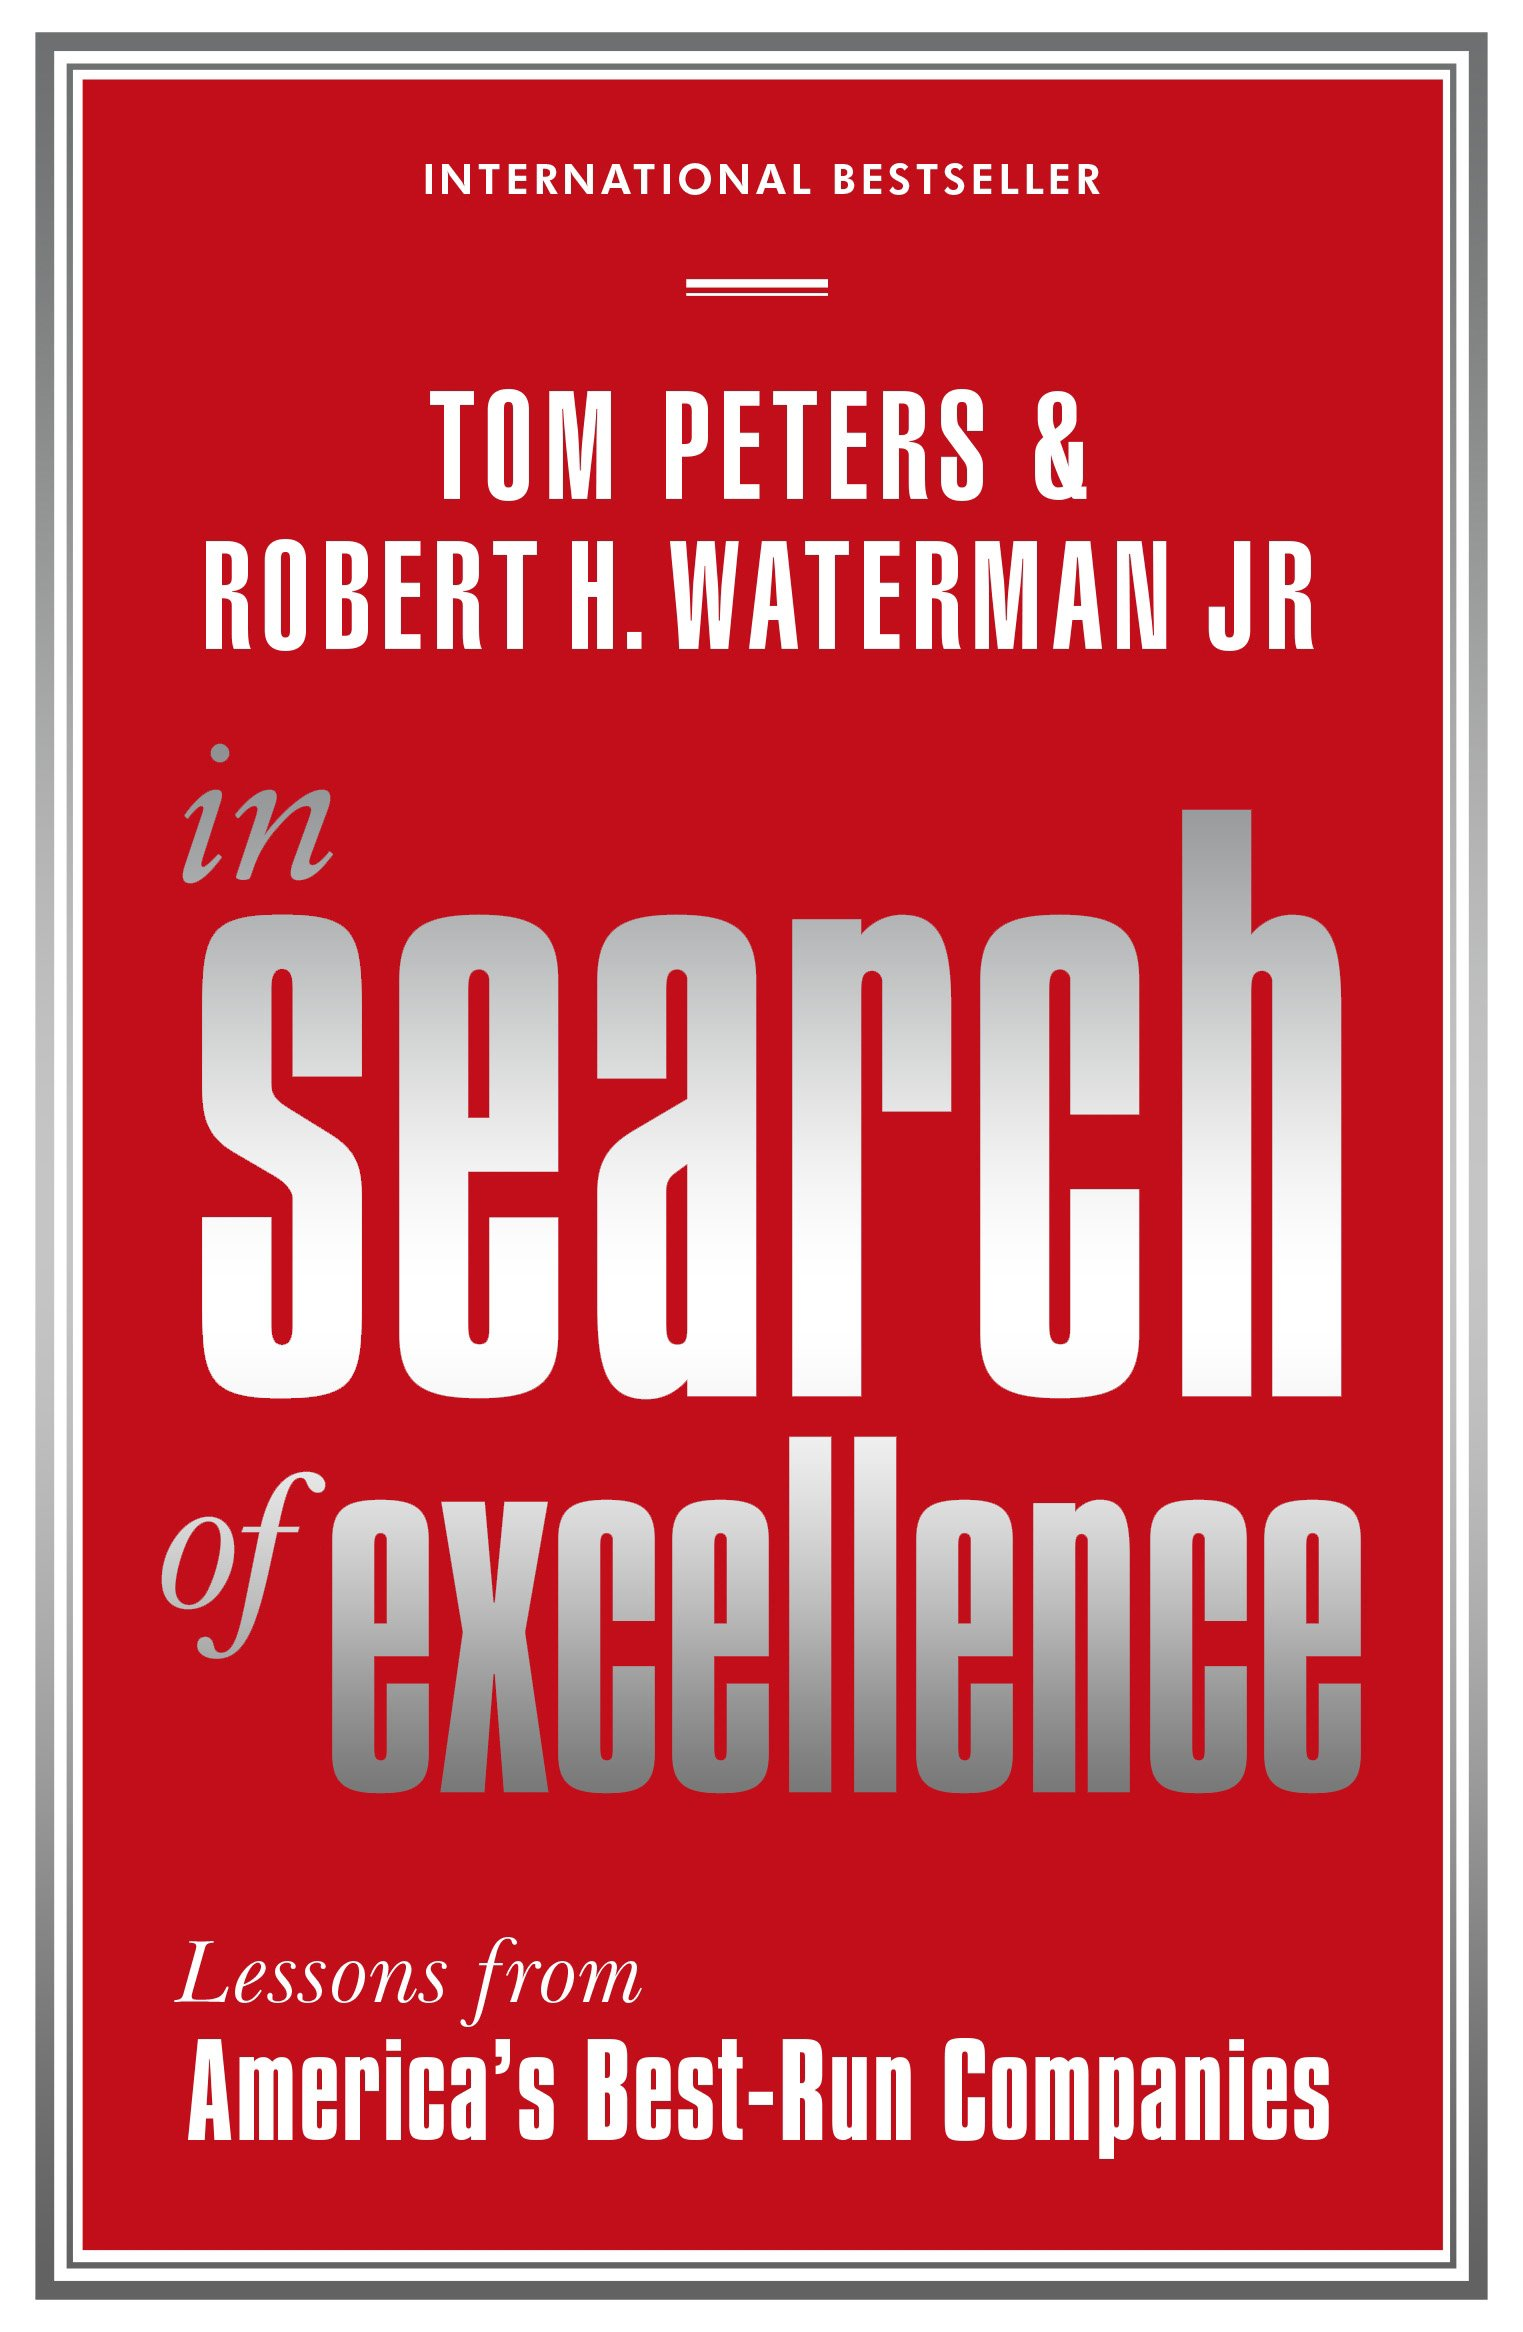 In Search of Excellence Profile Business Classics Amazon Tom Peters Robert H Waterman Fremdsprachige Bücher